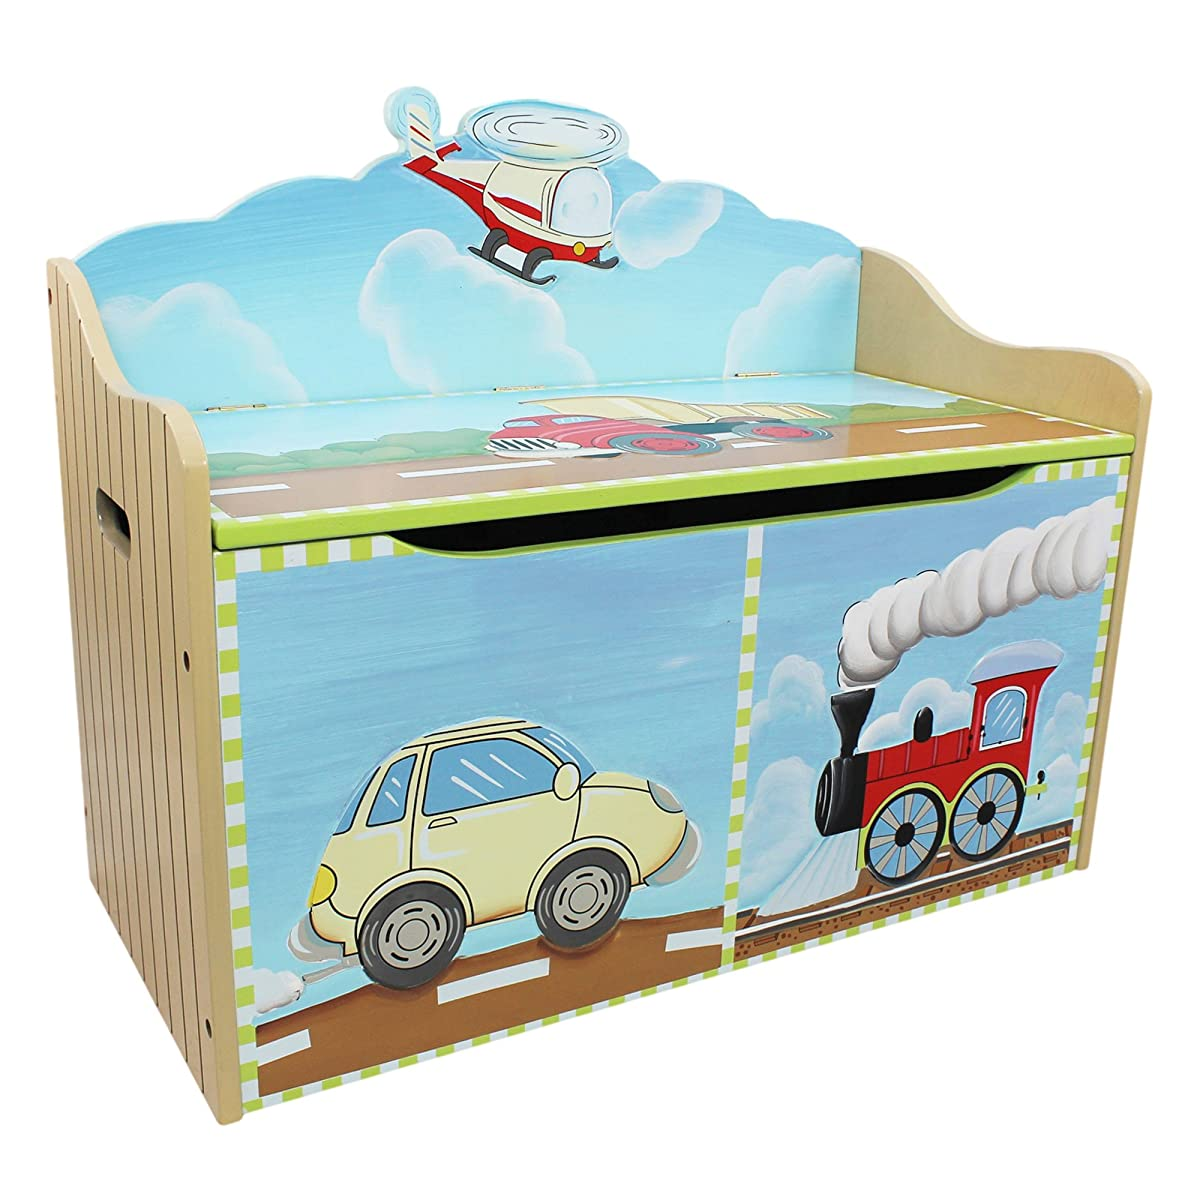 Transportation Thematic Kids Wooden Toy Chest with Safety Hinges Imagination Inspiring Hand Crafted